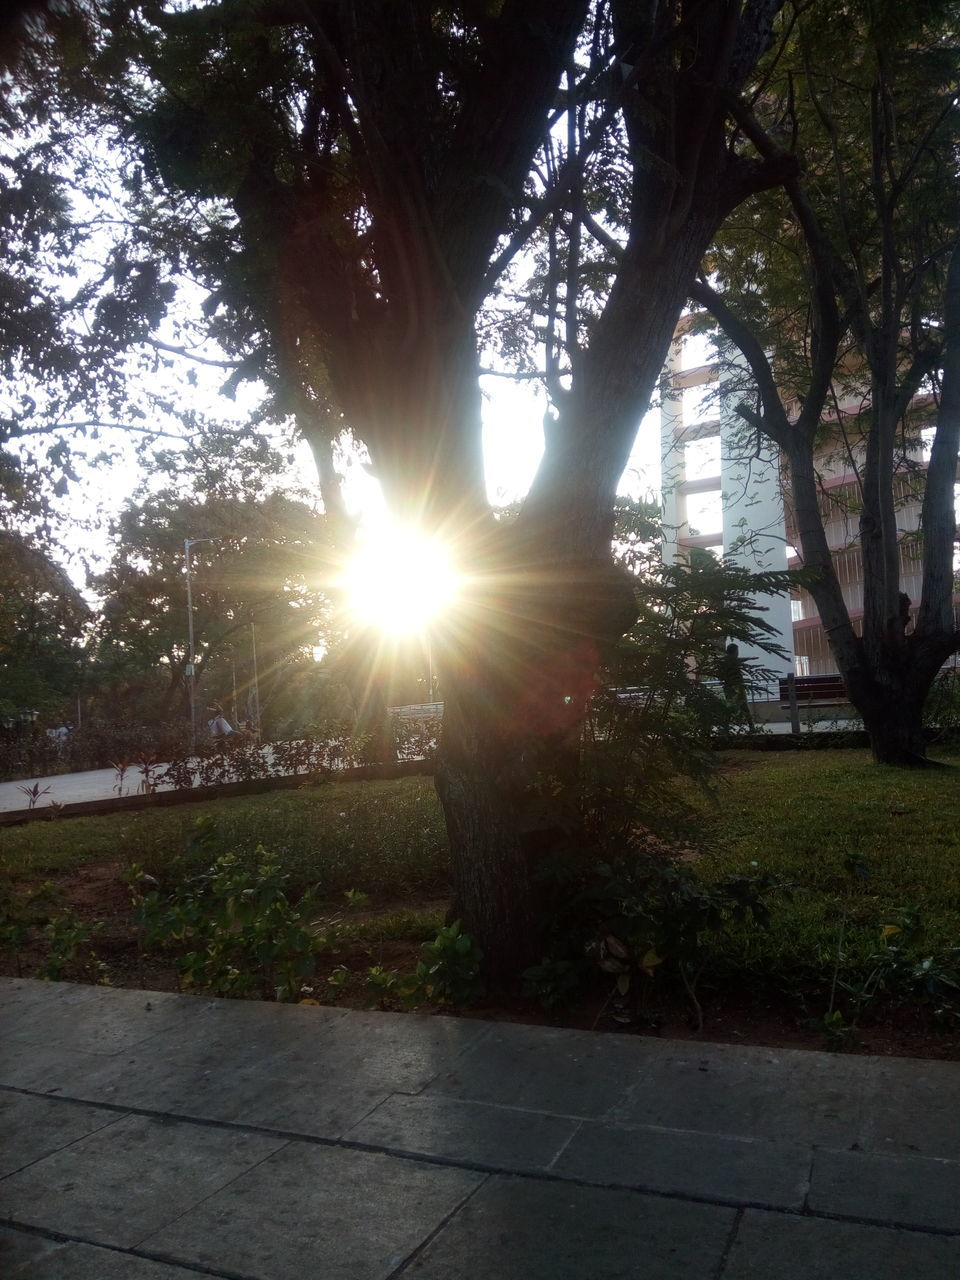 tree, sunbeam, sun, sunlight, lens flare, nature, growth, outdoors, tranquility, no people, beauty in nature, scenics, grass, day, branch, sunset, sky